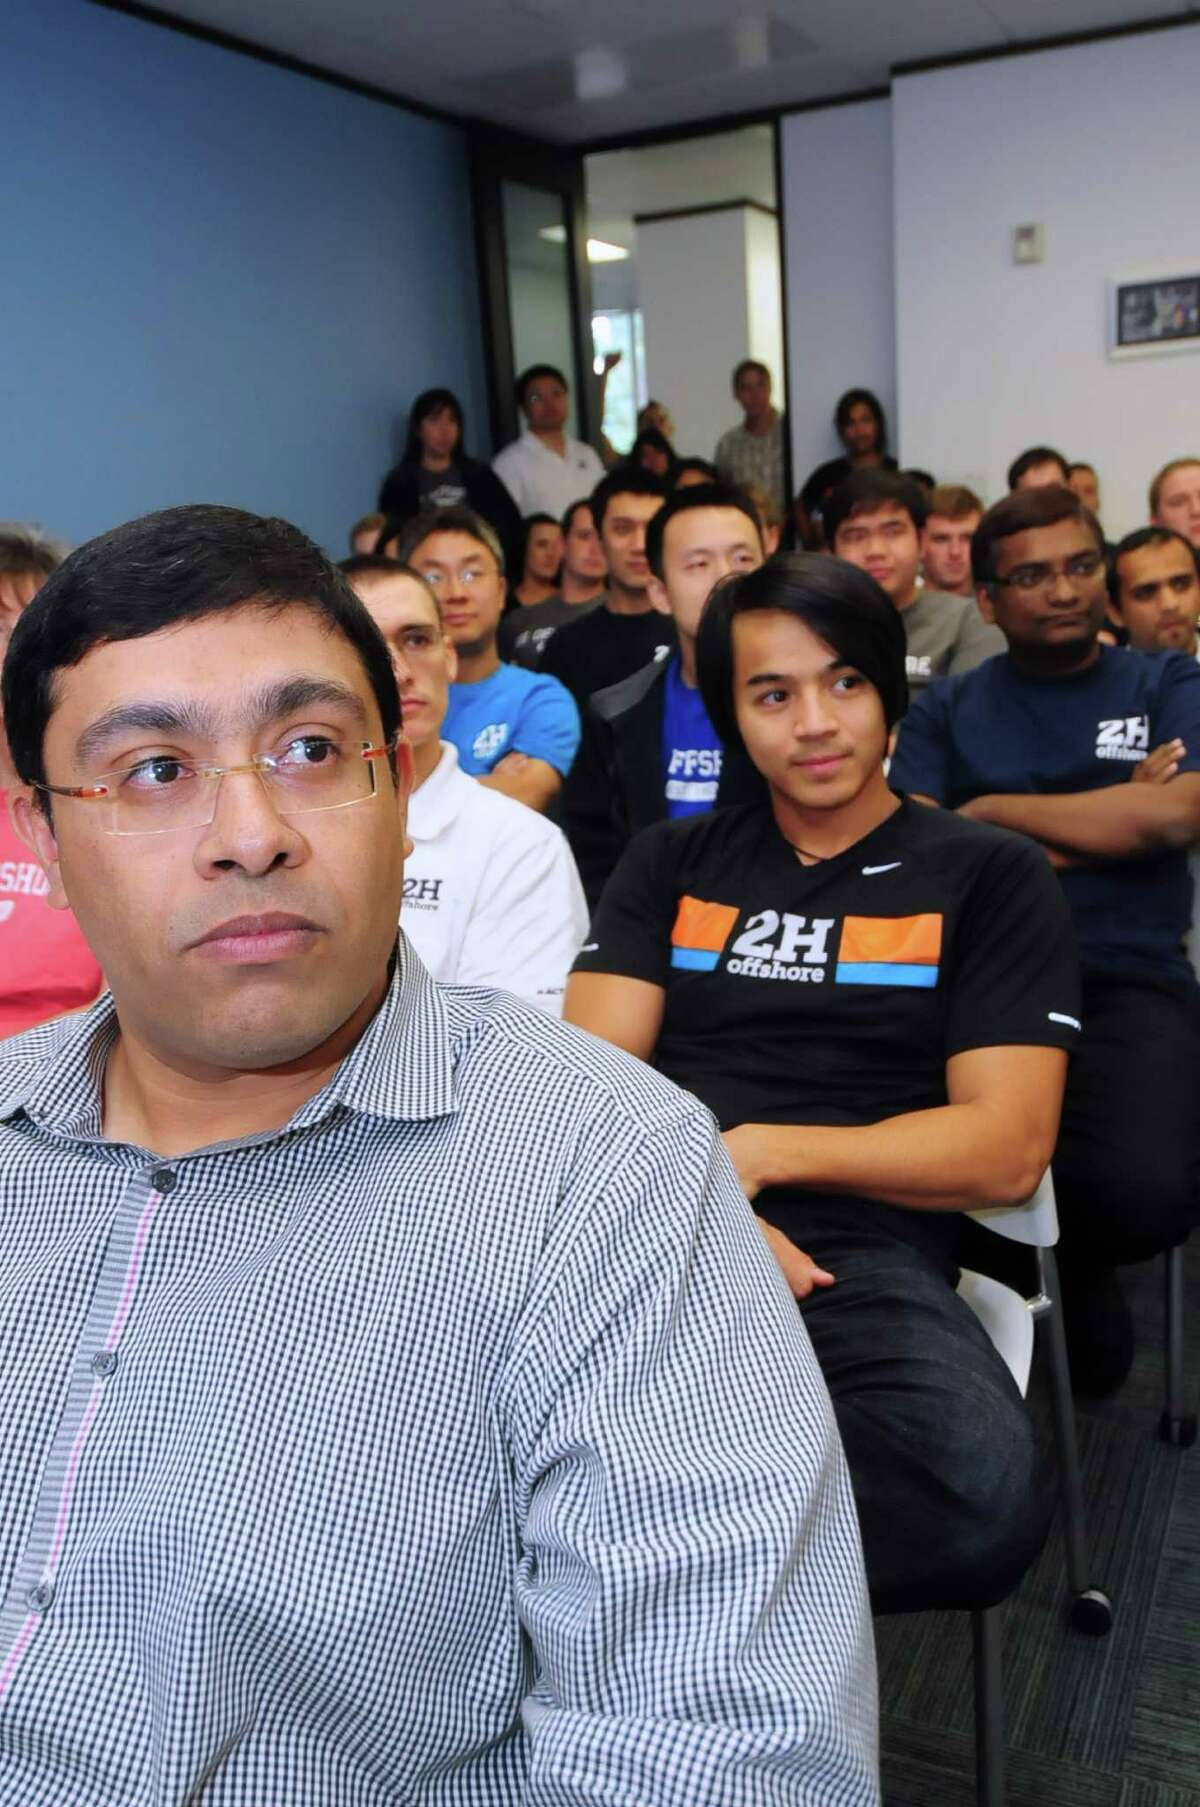 Ricky Thethi sits in on the weekly 2H Offshore training session. Each week there are different presenters, giving employees a chance to hone their skills.